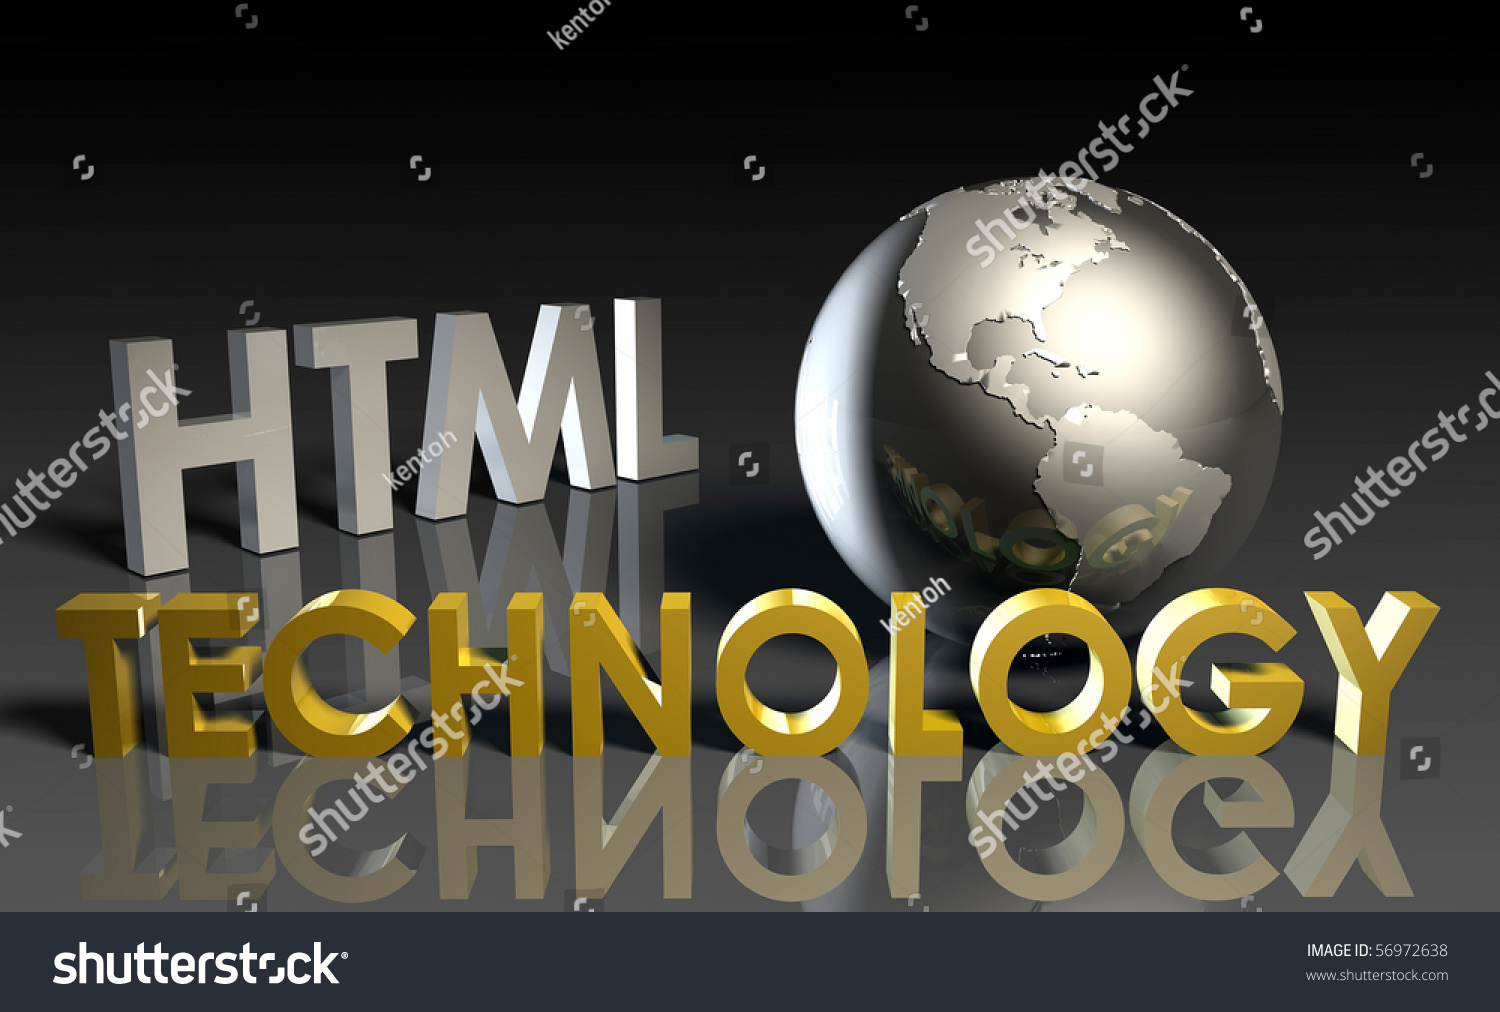 Html Technology Internet Abstract As A Concept Stock Photo